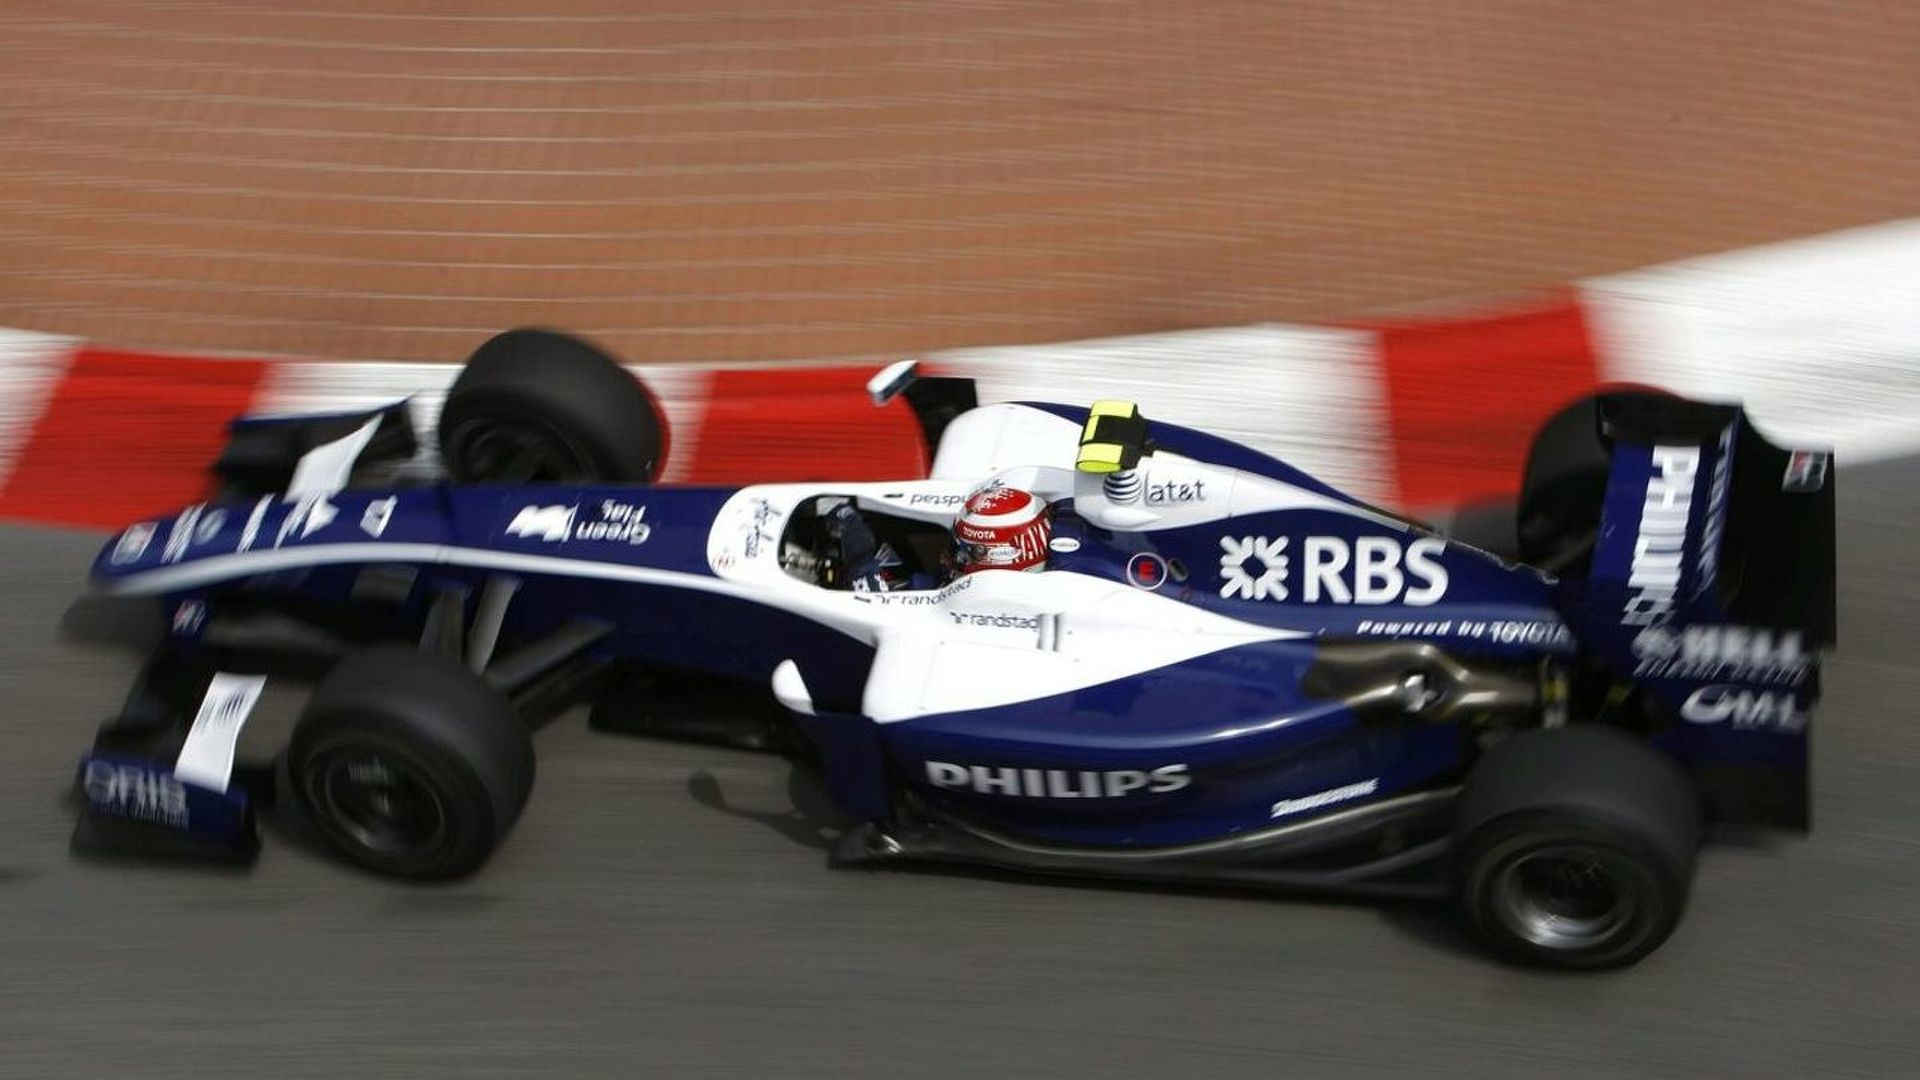 Williams falls in line with FOTA over KERS ban